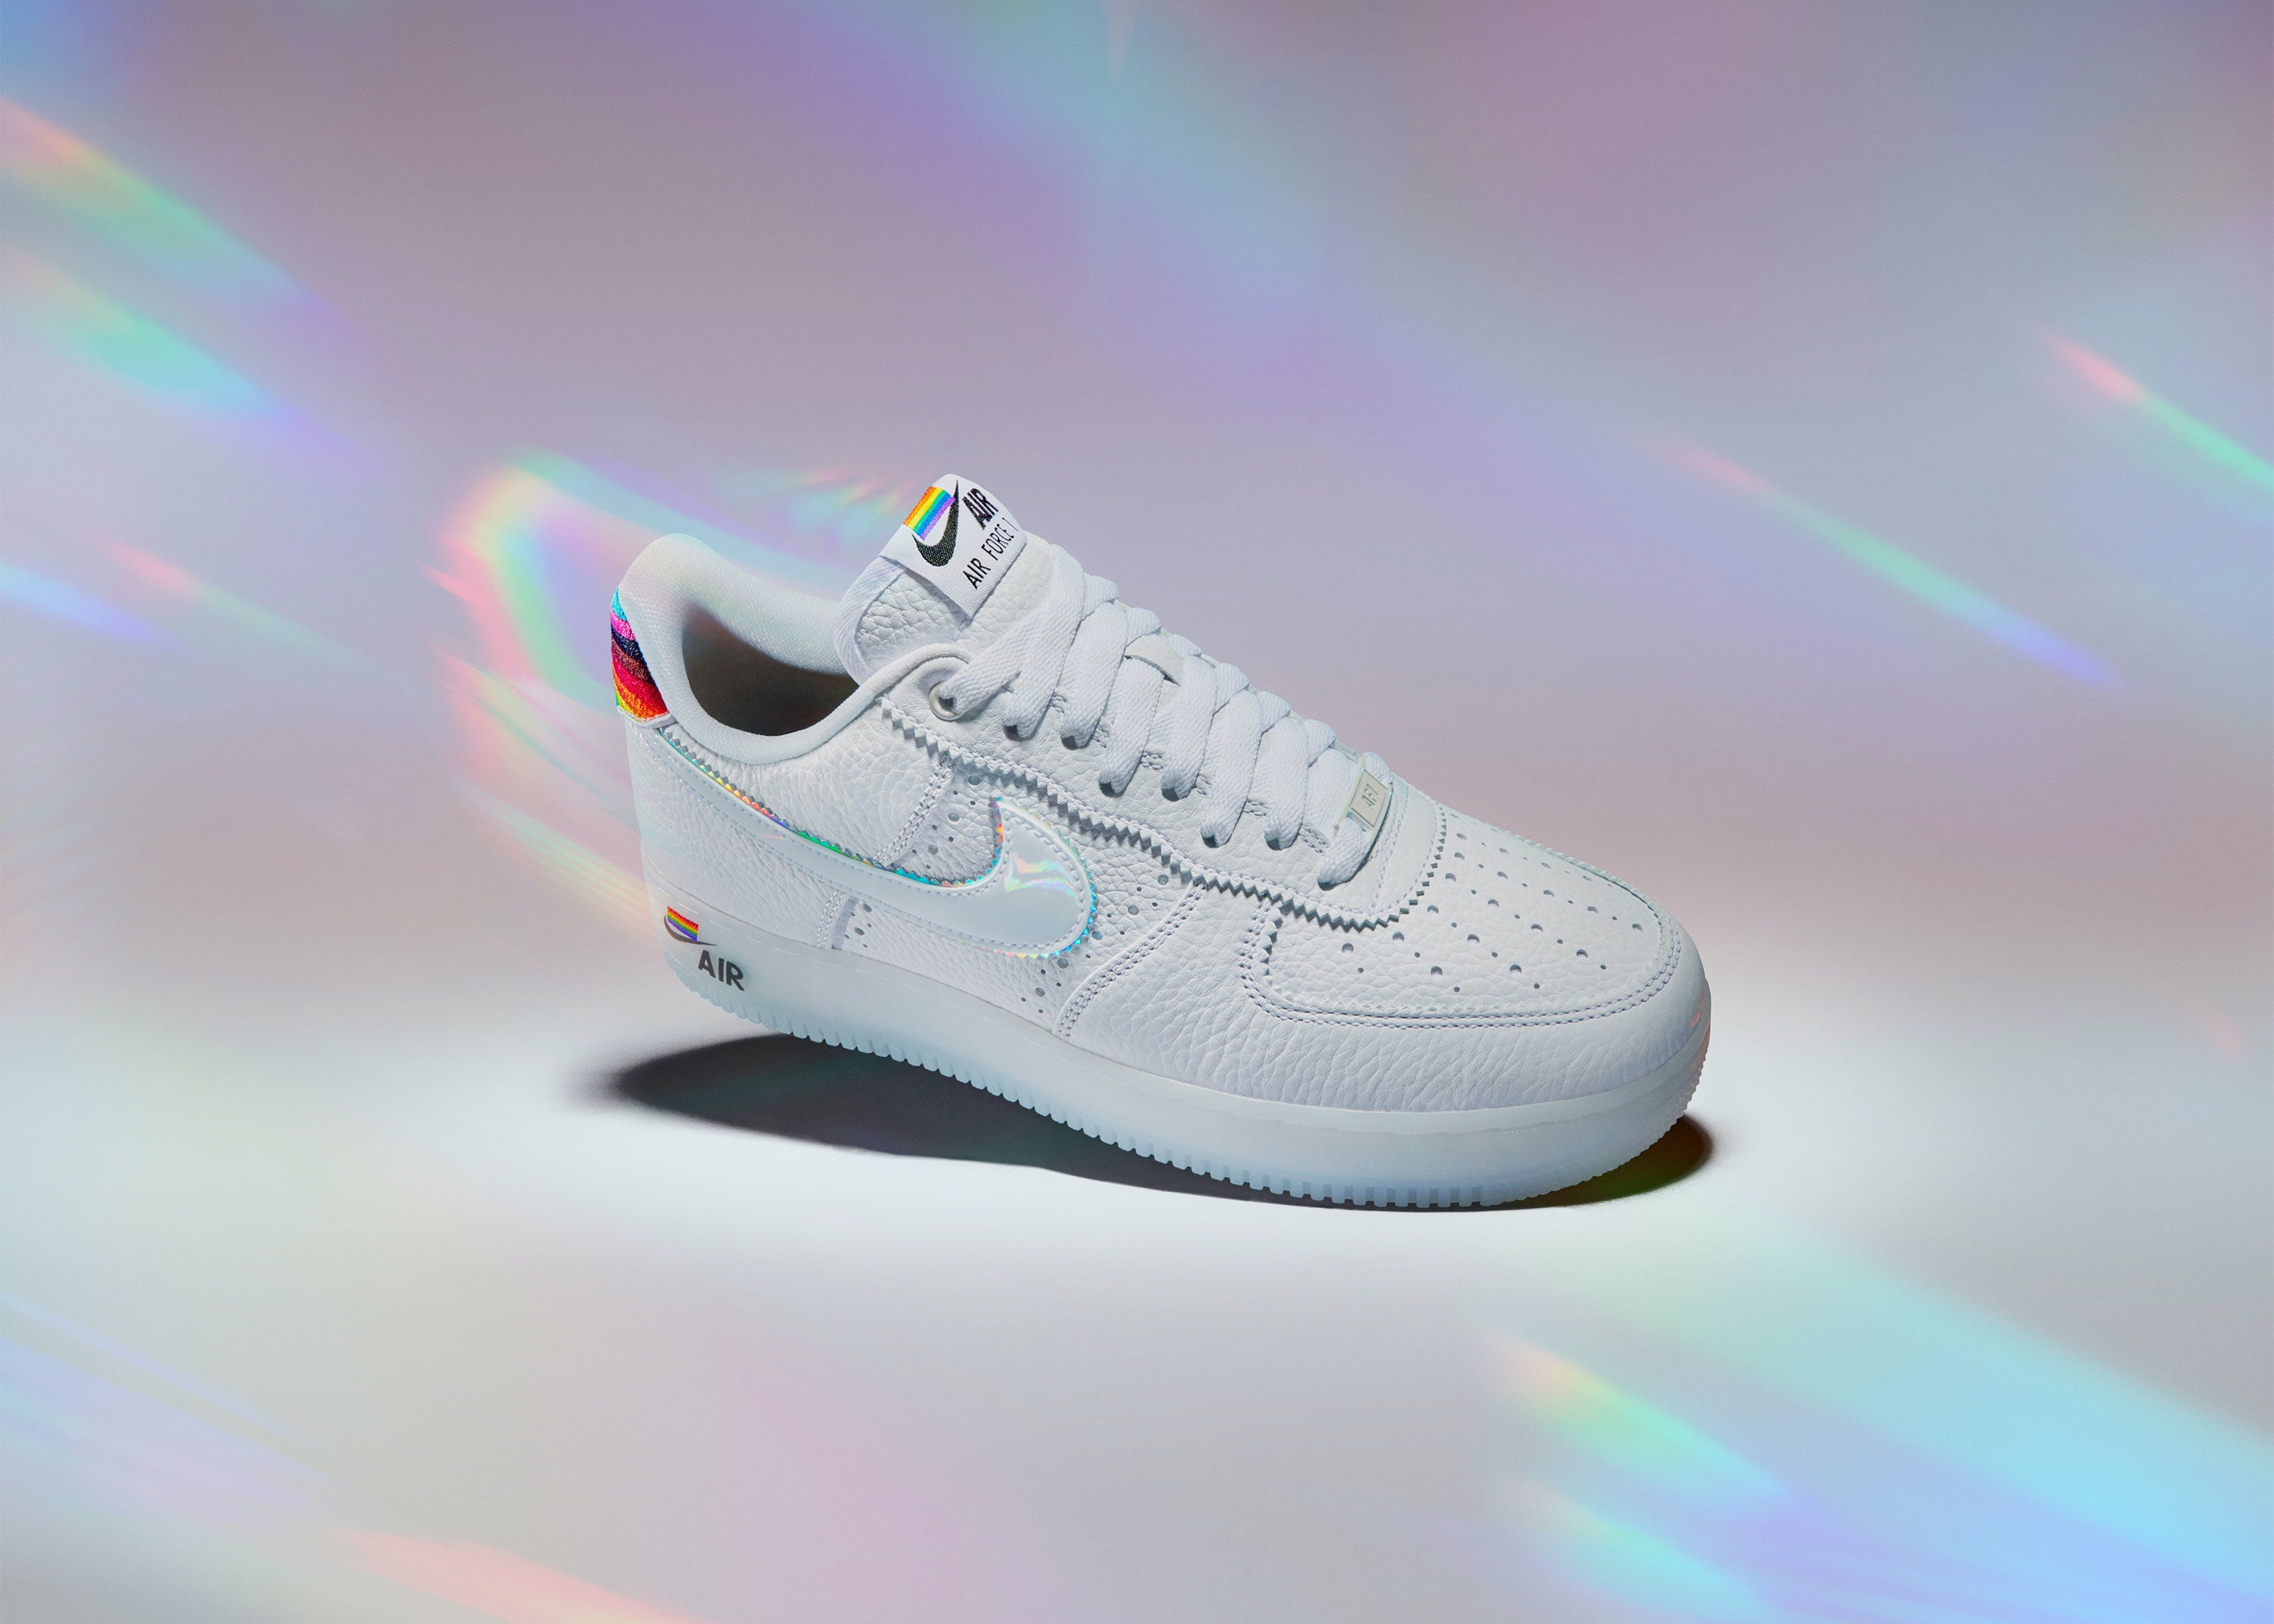 Nike's Pride-themed Air Force 1